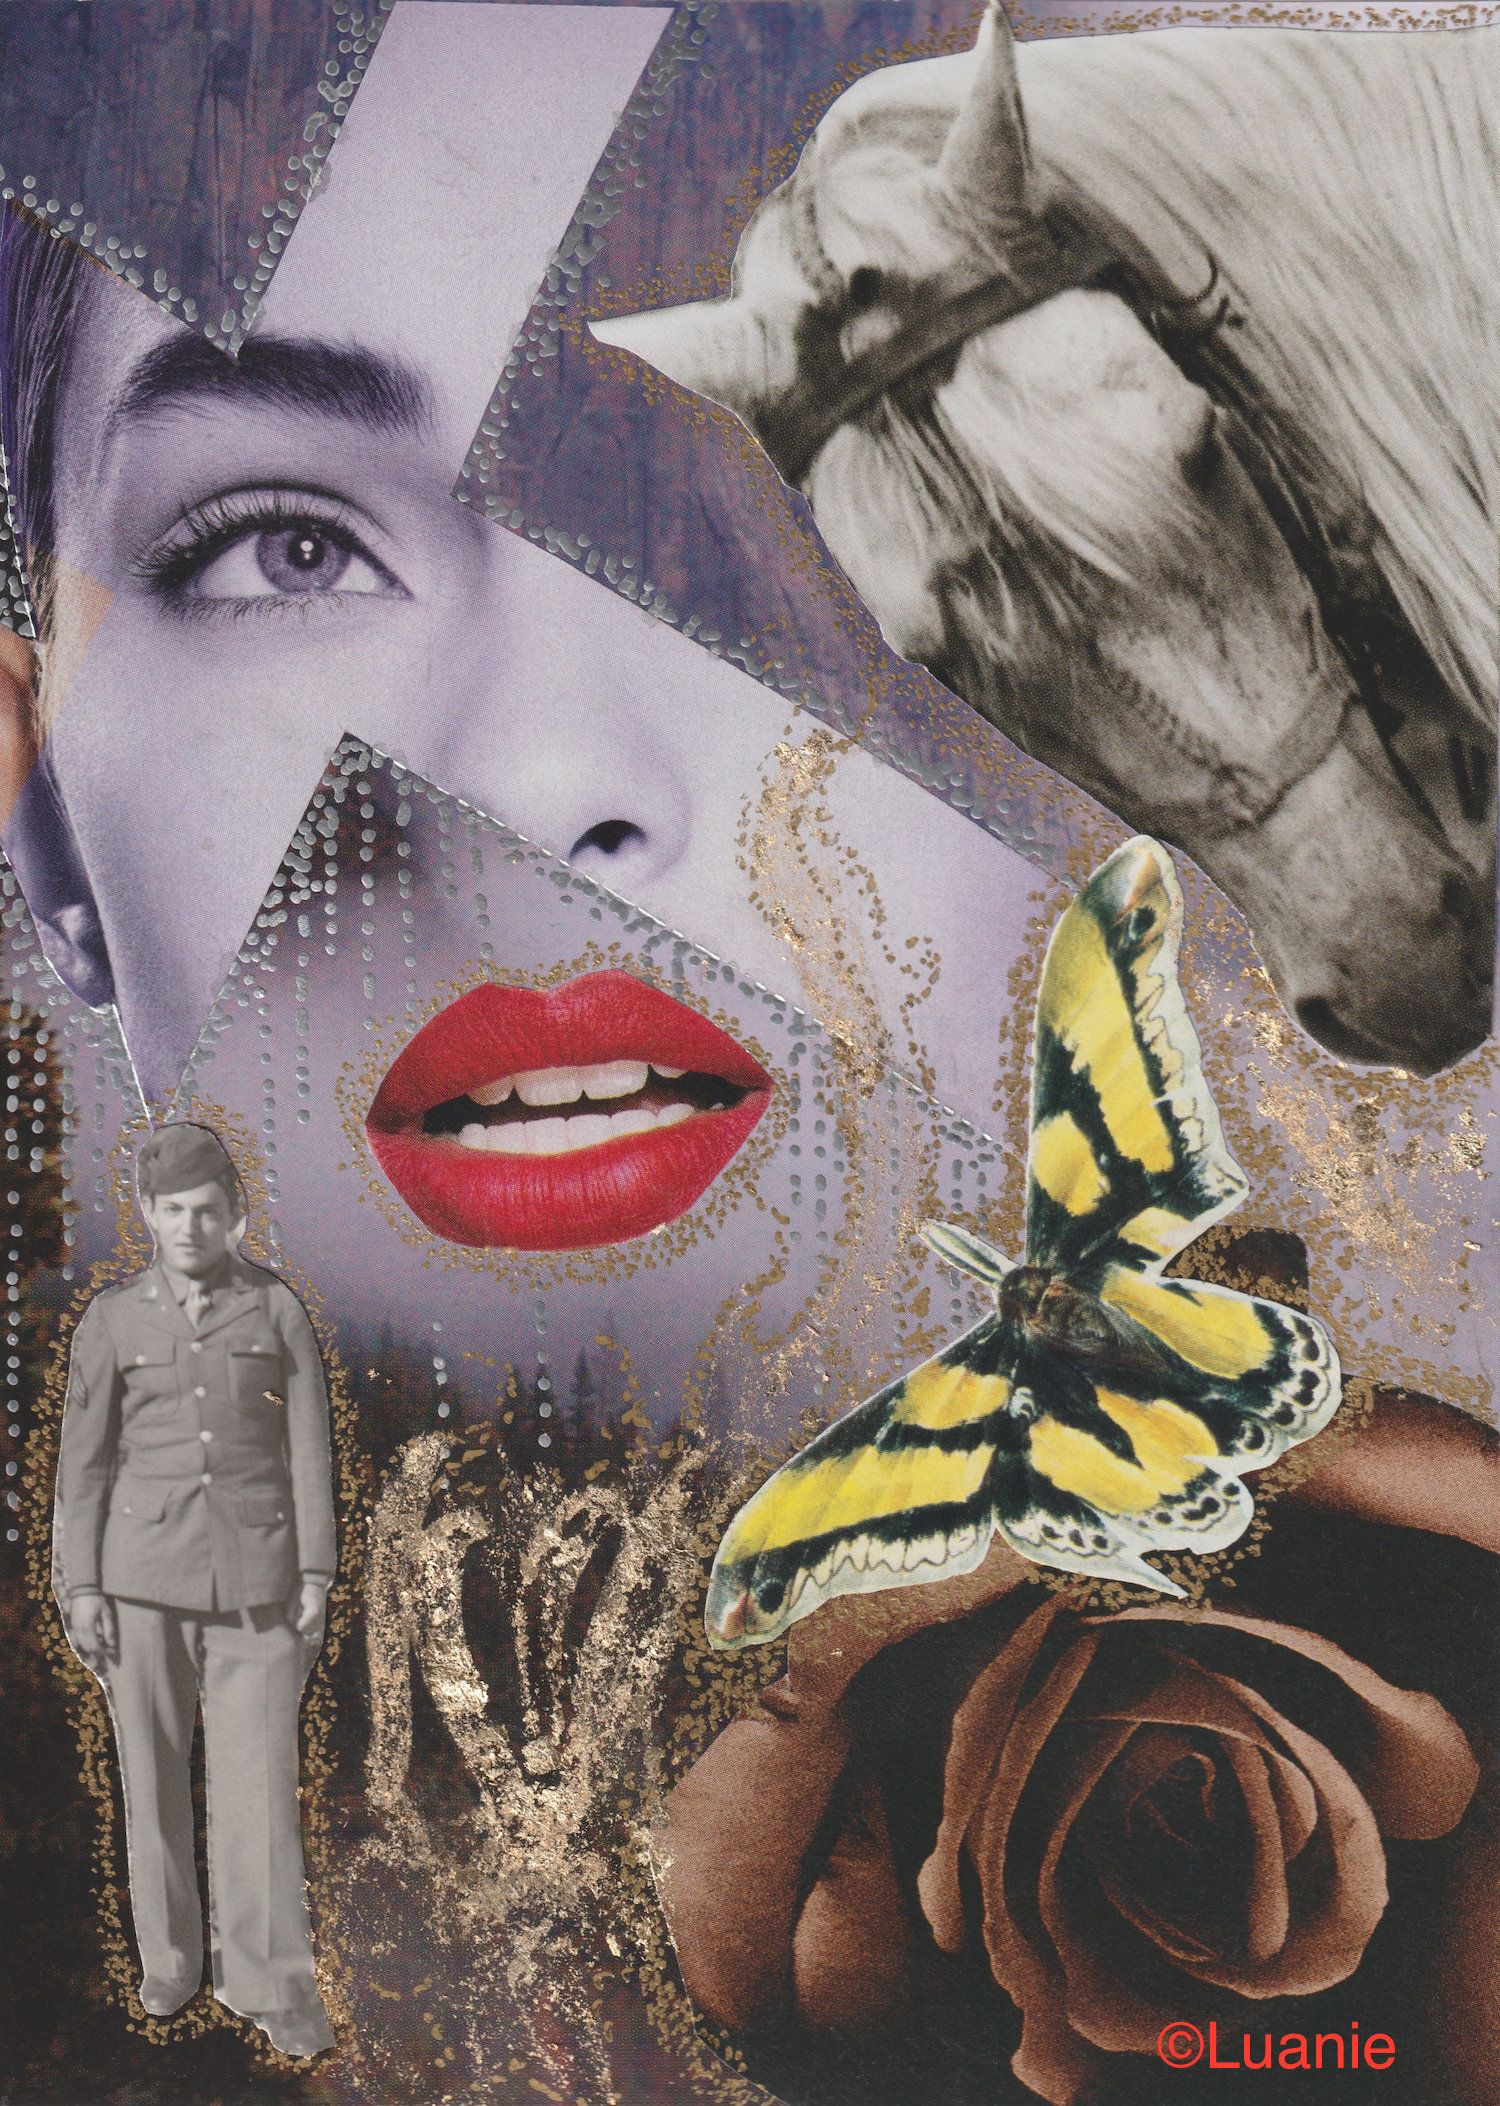 INNOCENT DANGER Collage SIGNED Original Artwork Mixed Media Outsider Art 5X7  By Found Object Artist Luanie LA102